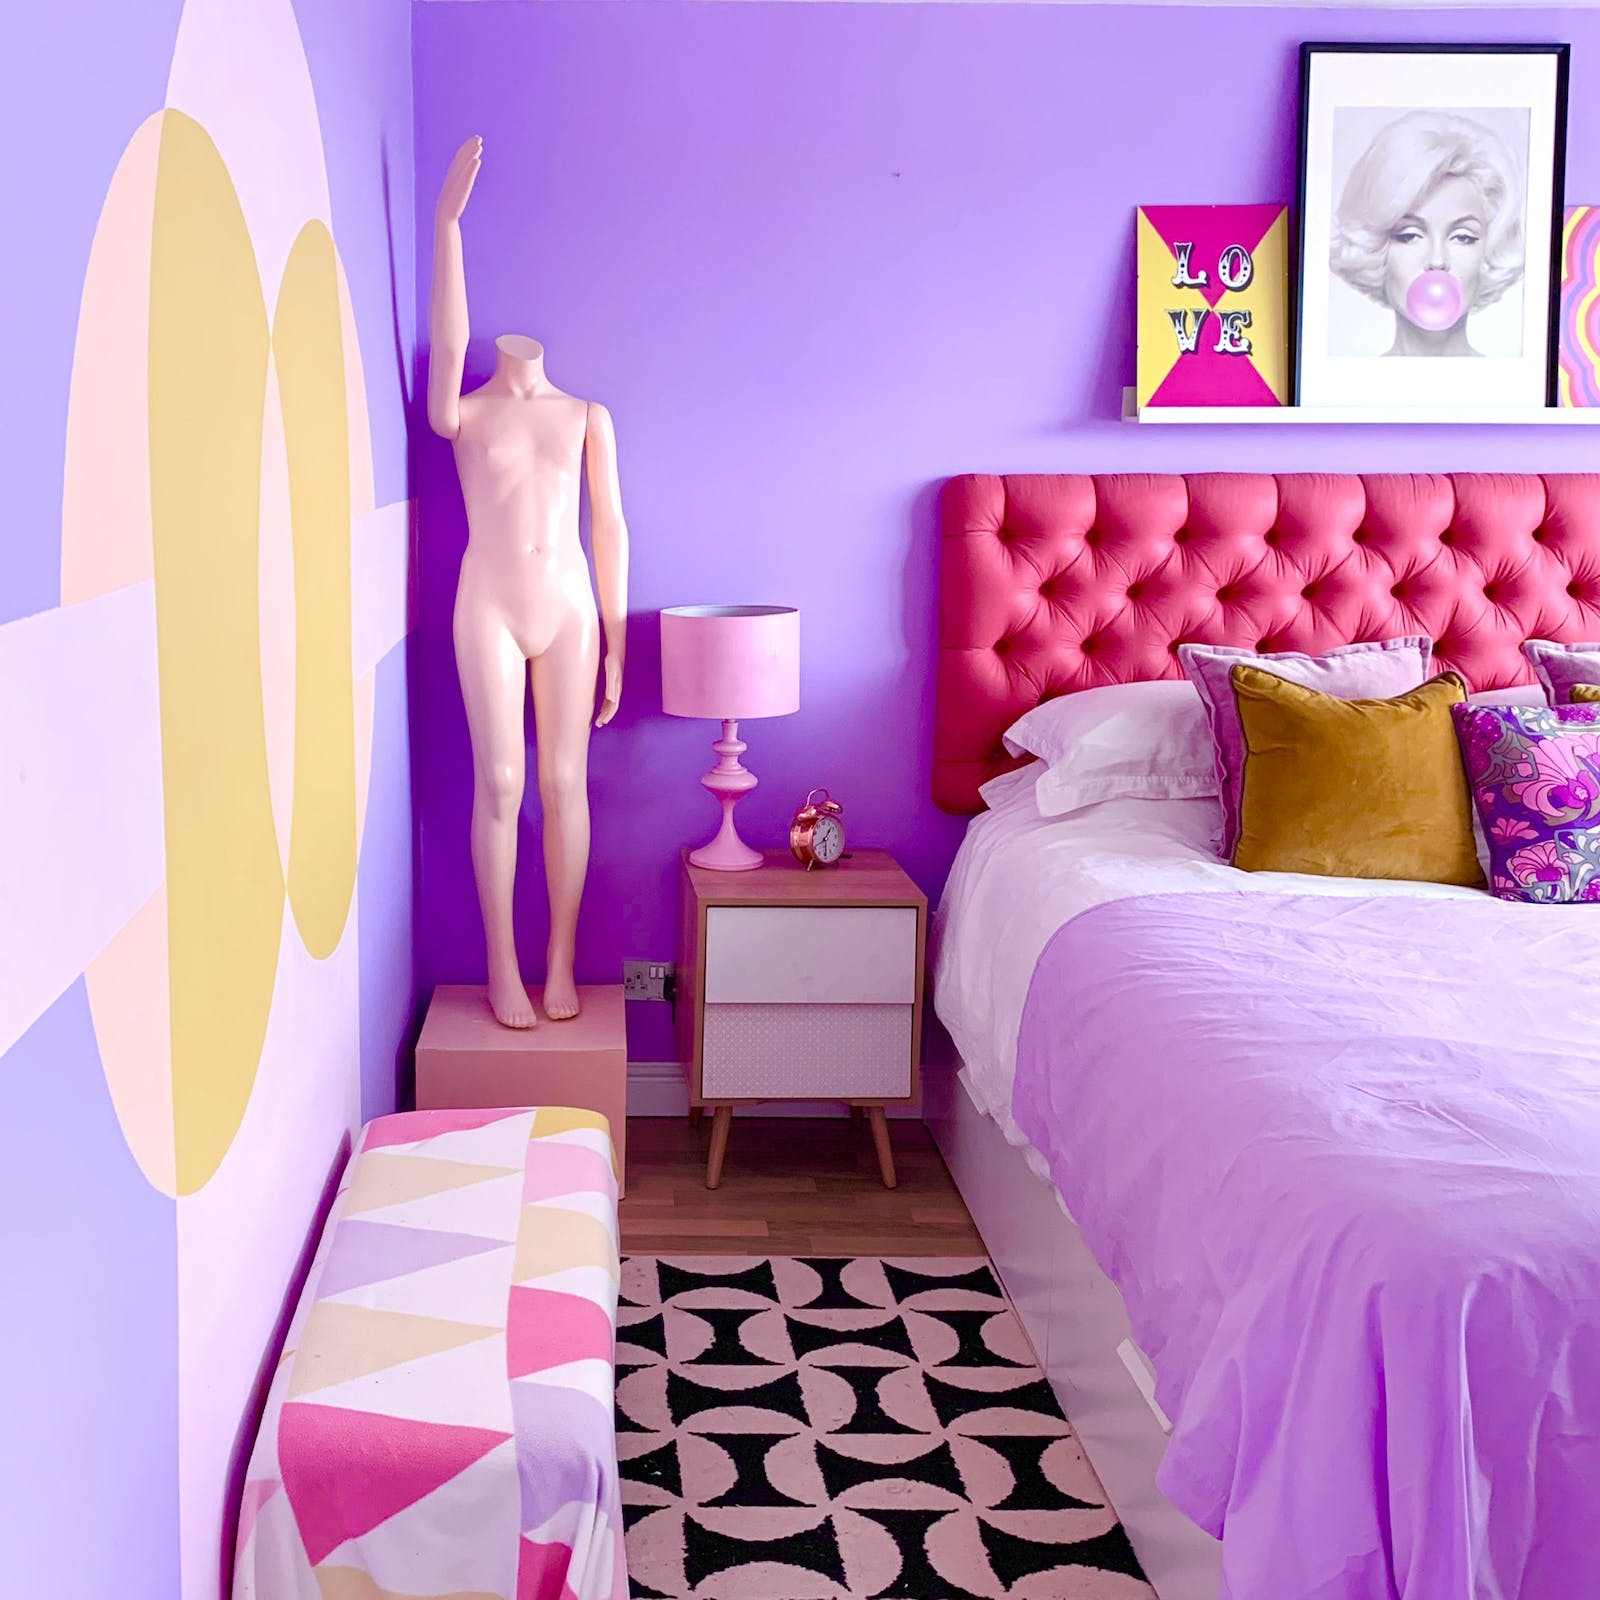 Bed wit pink headboard, purple bedding and purple walls